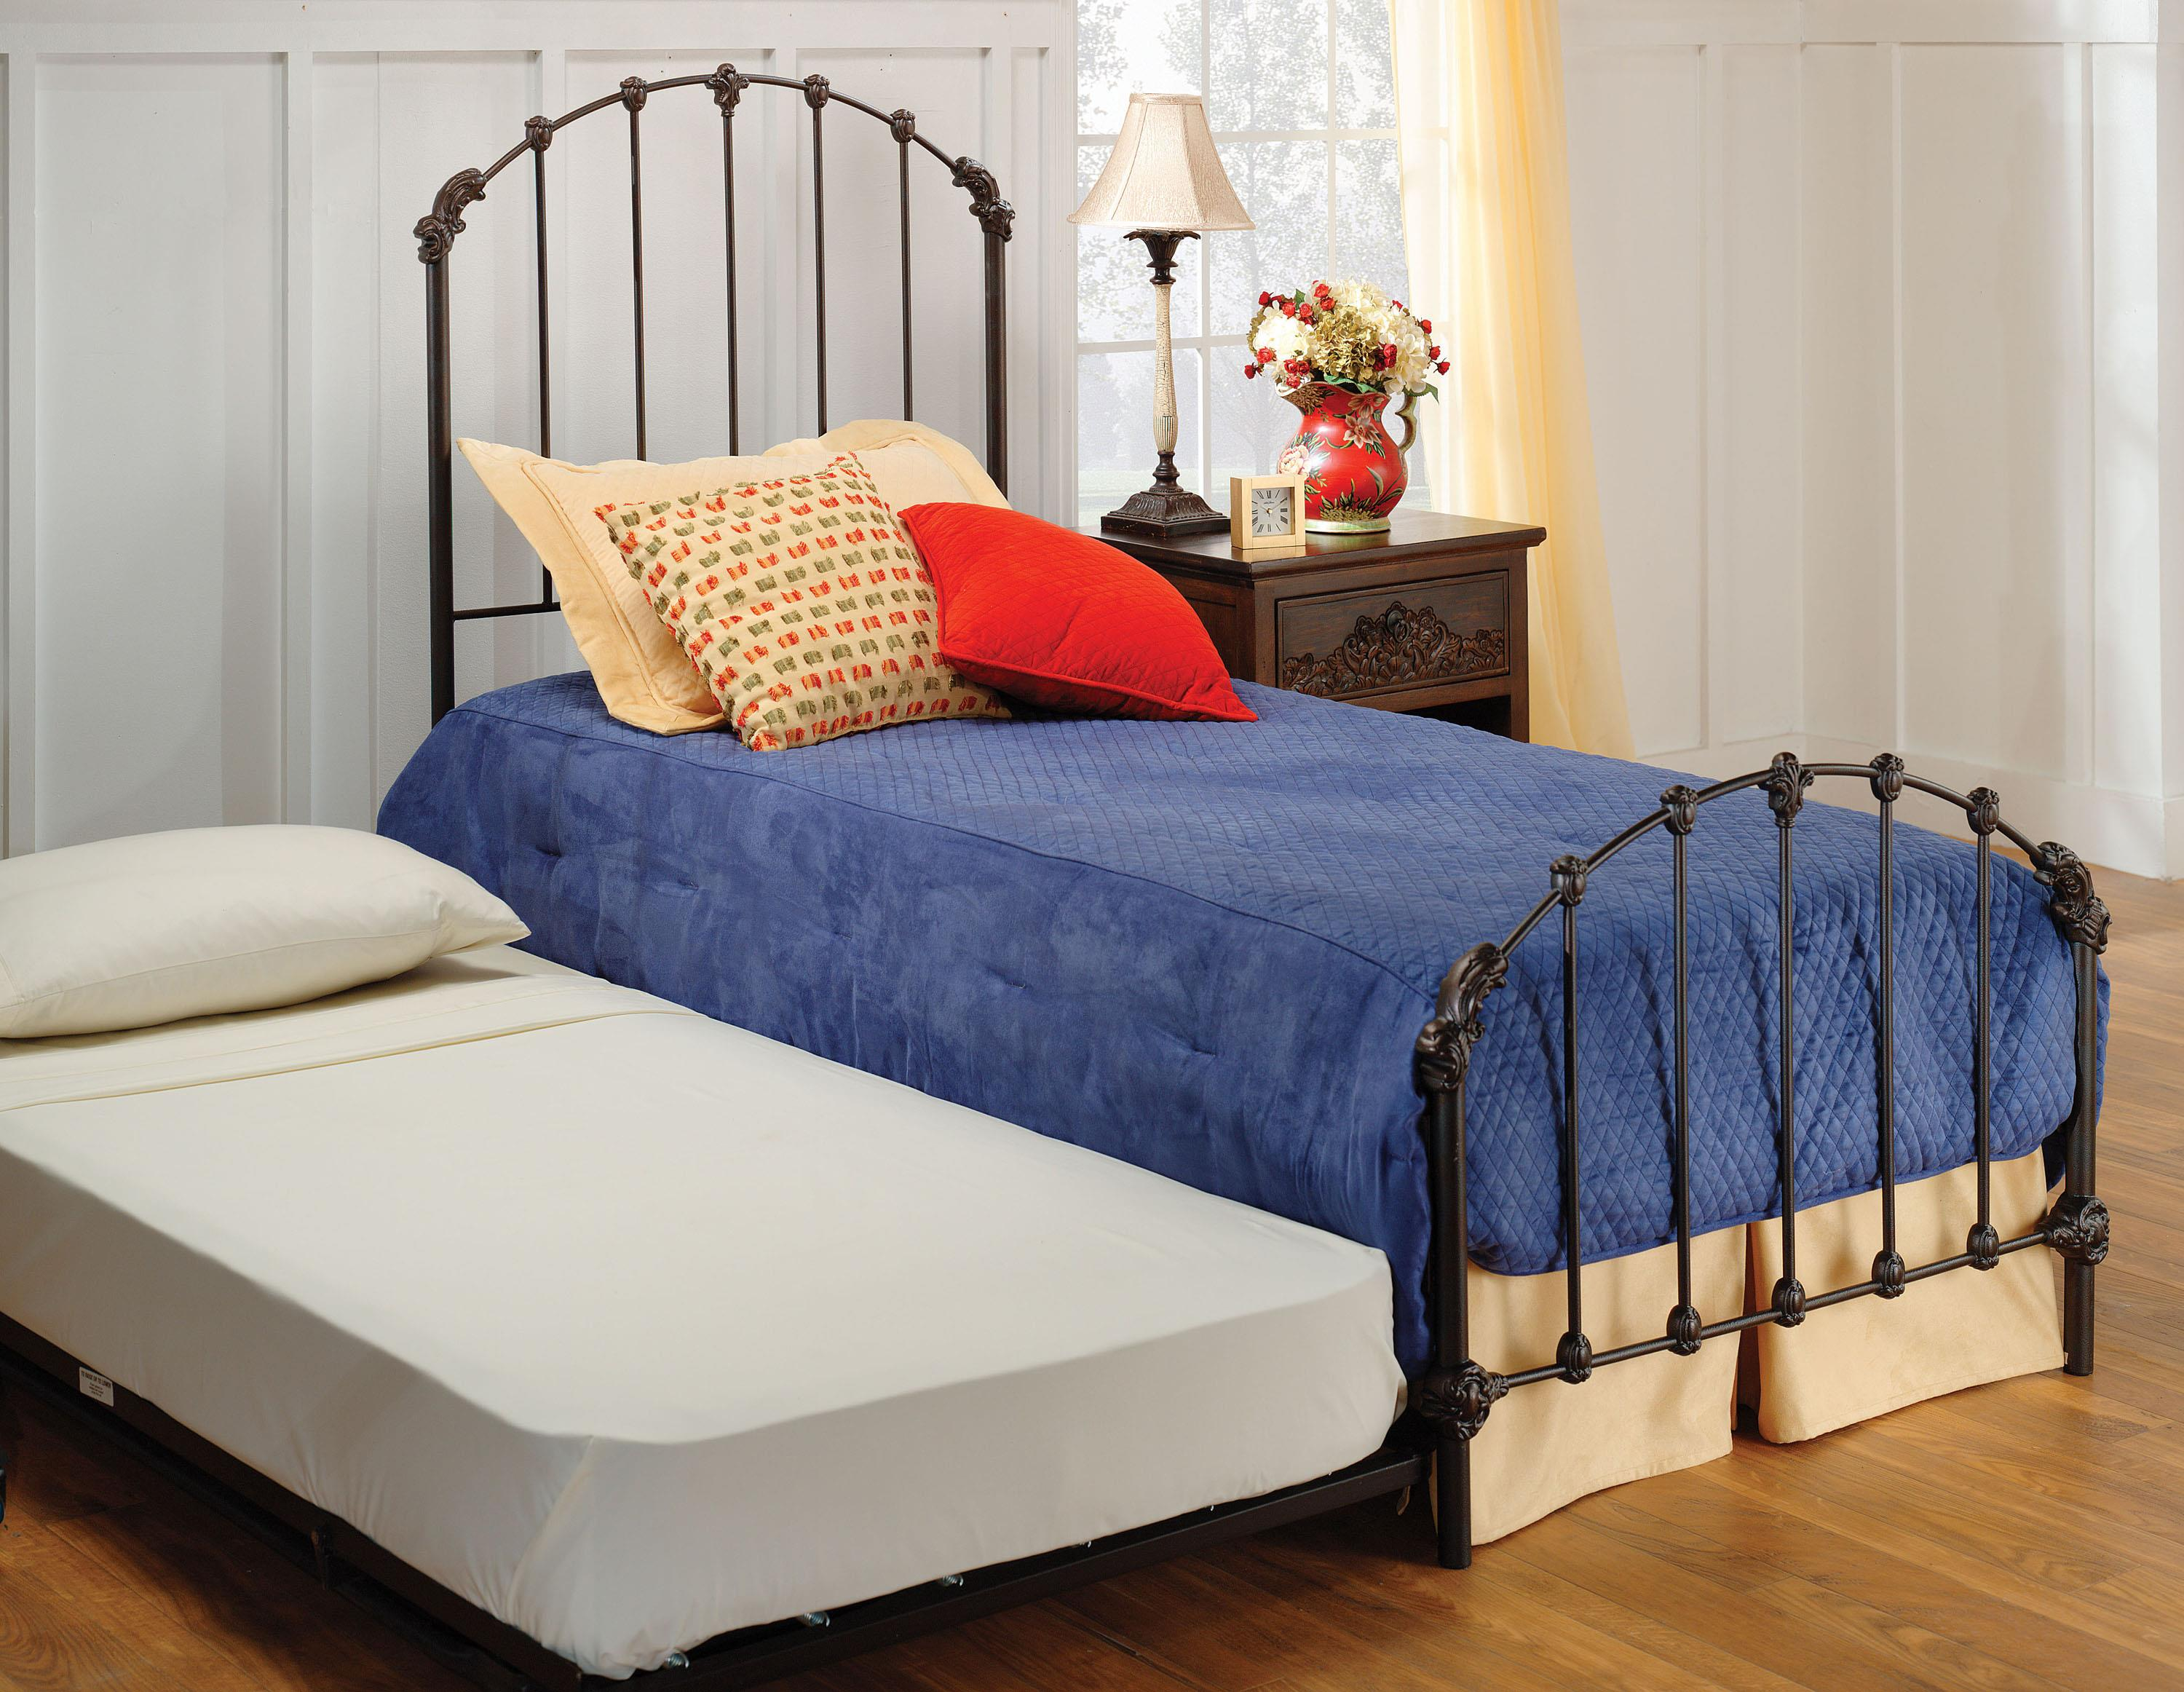 Hillsdale Metal Beds Bed Set - Twin - w/Rails and Trundle - Item Number: 346BTWHTR